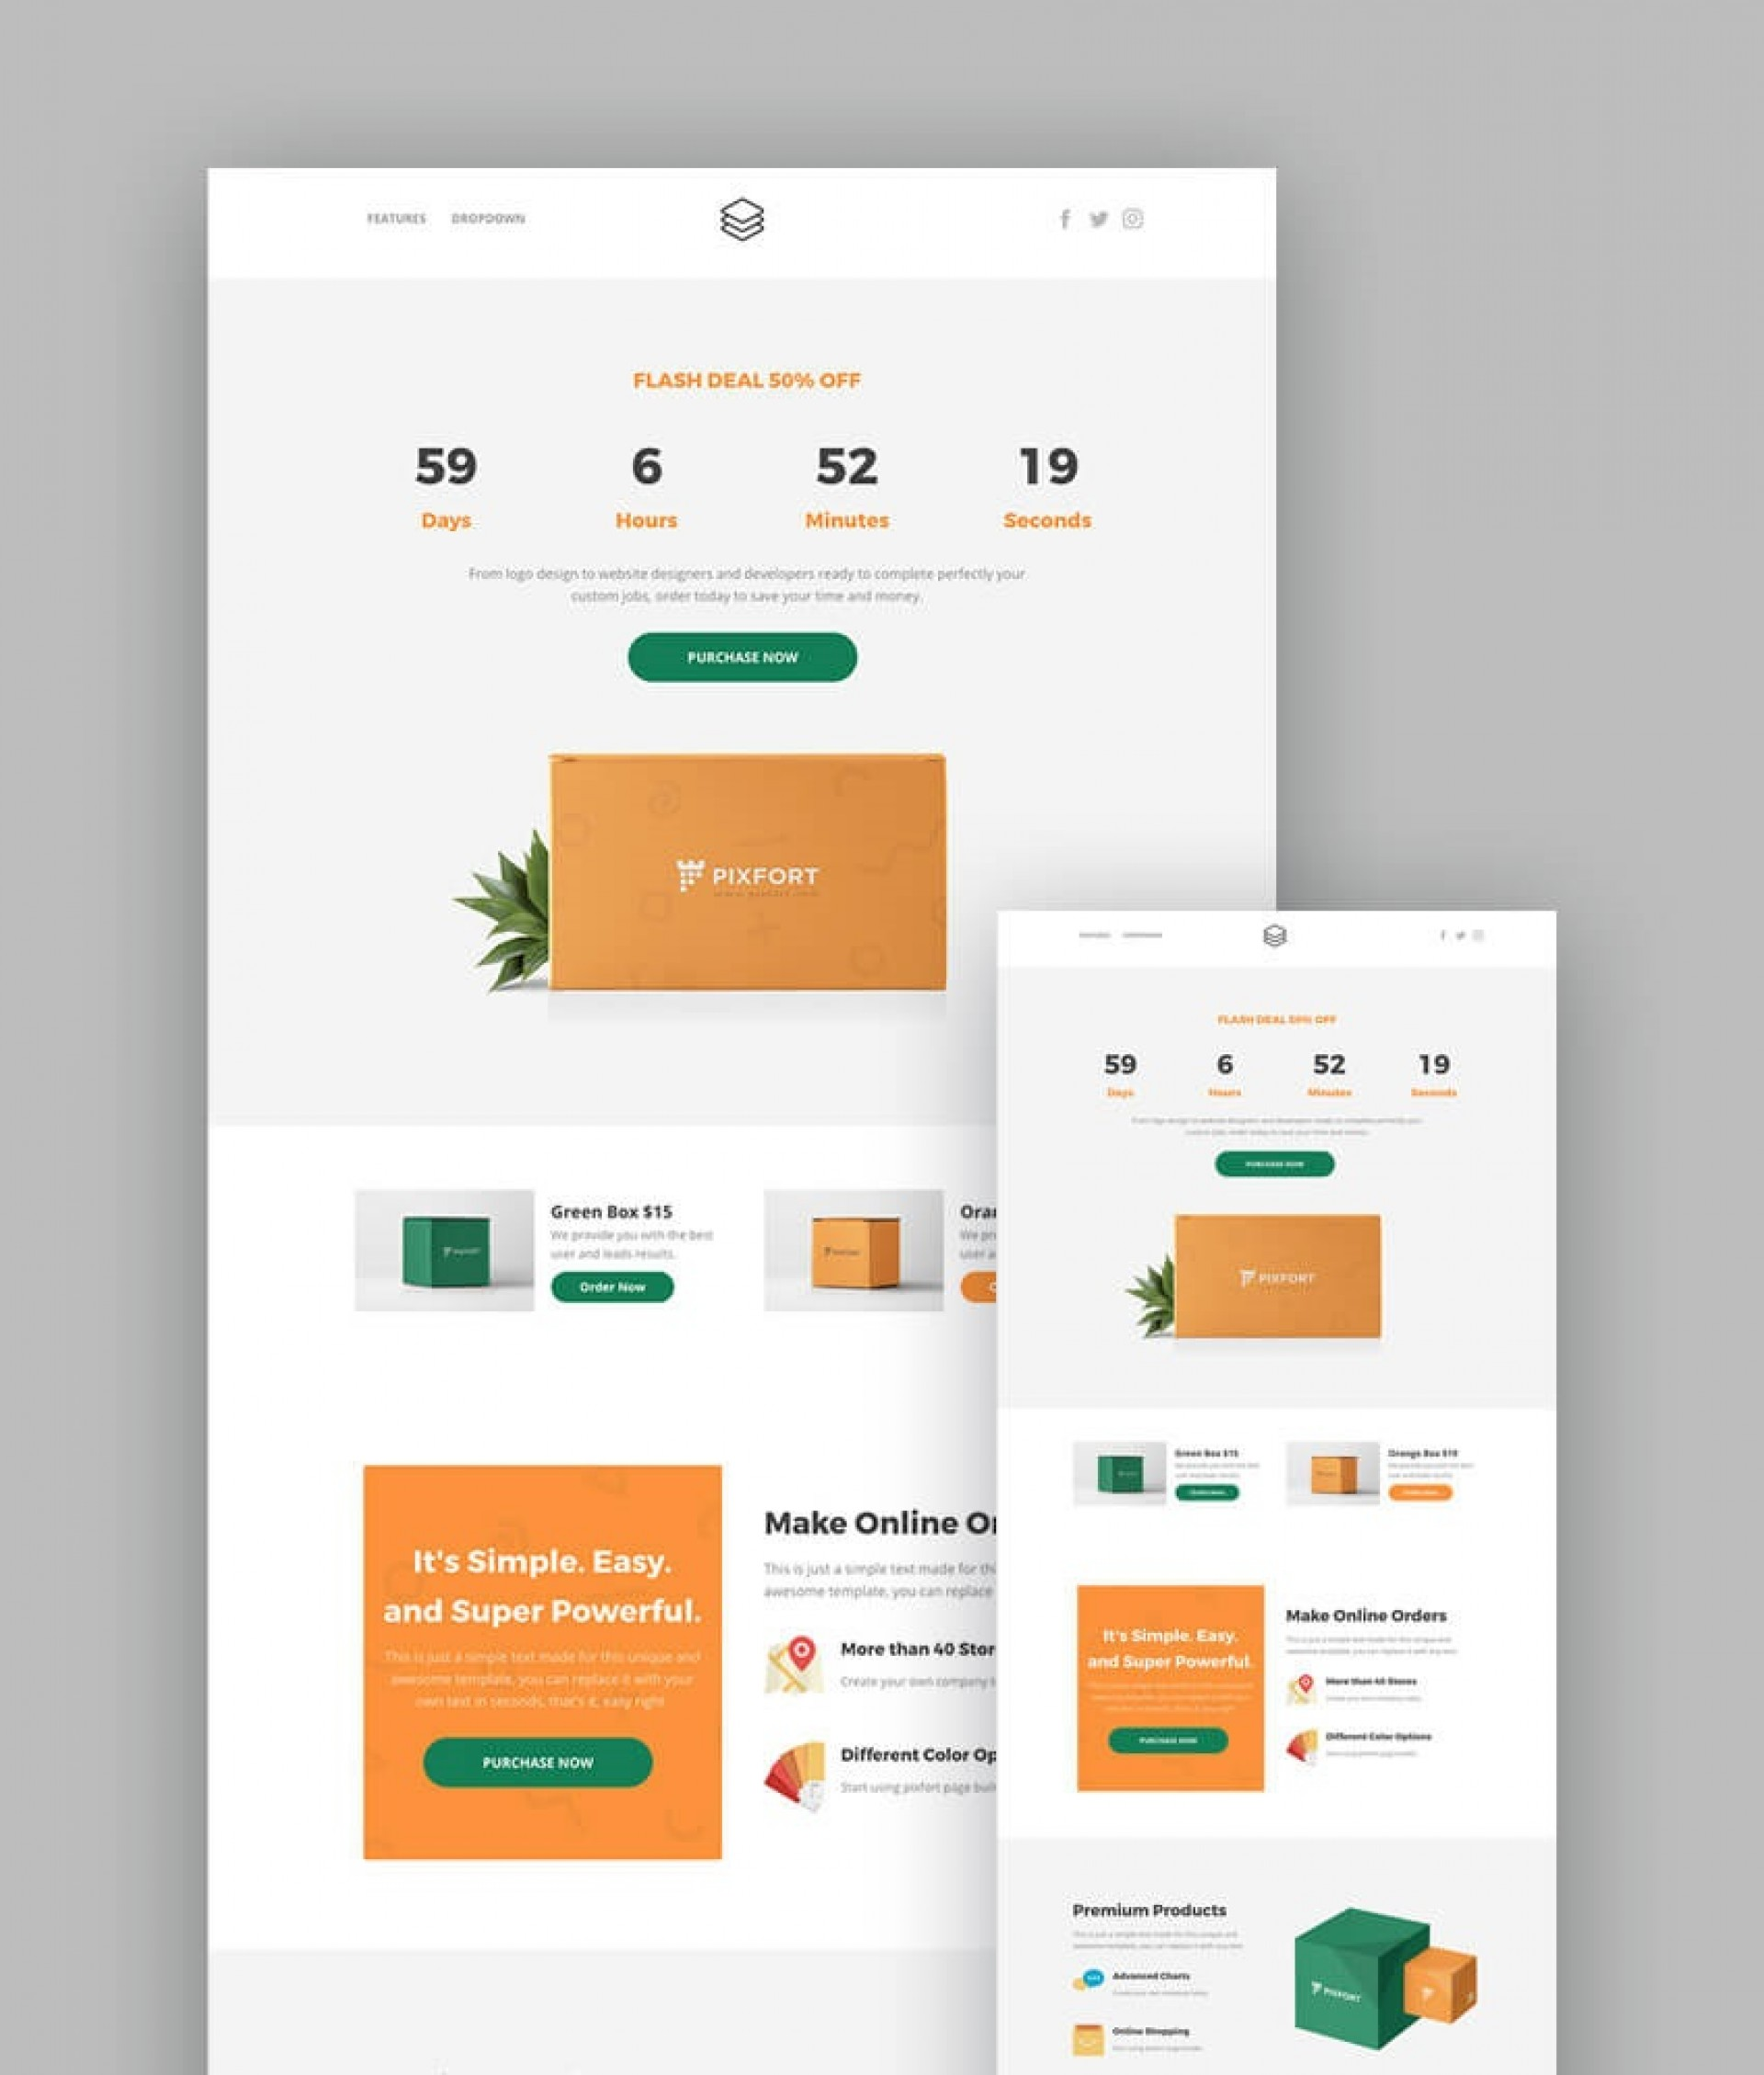 006 Excellent Responsive Landing Page Template Highest Clarity  Free Html With Flexbox Html51920